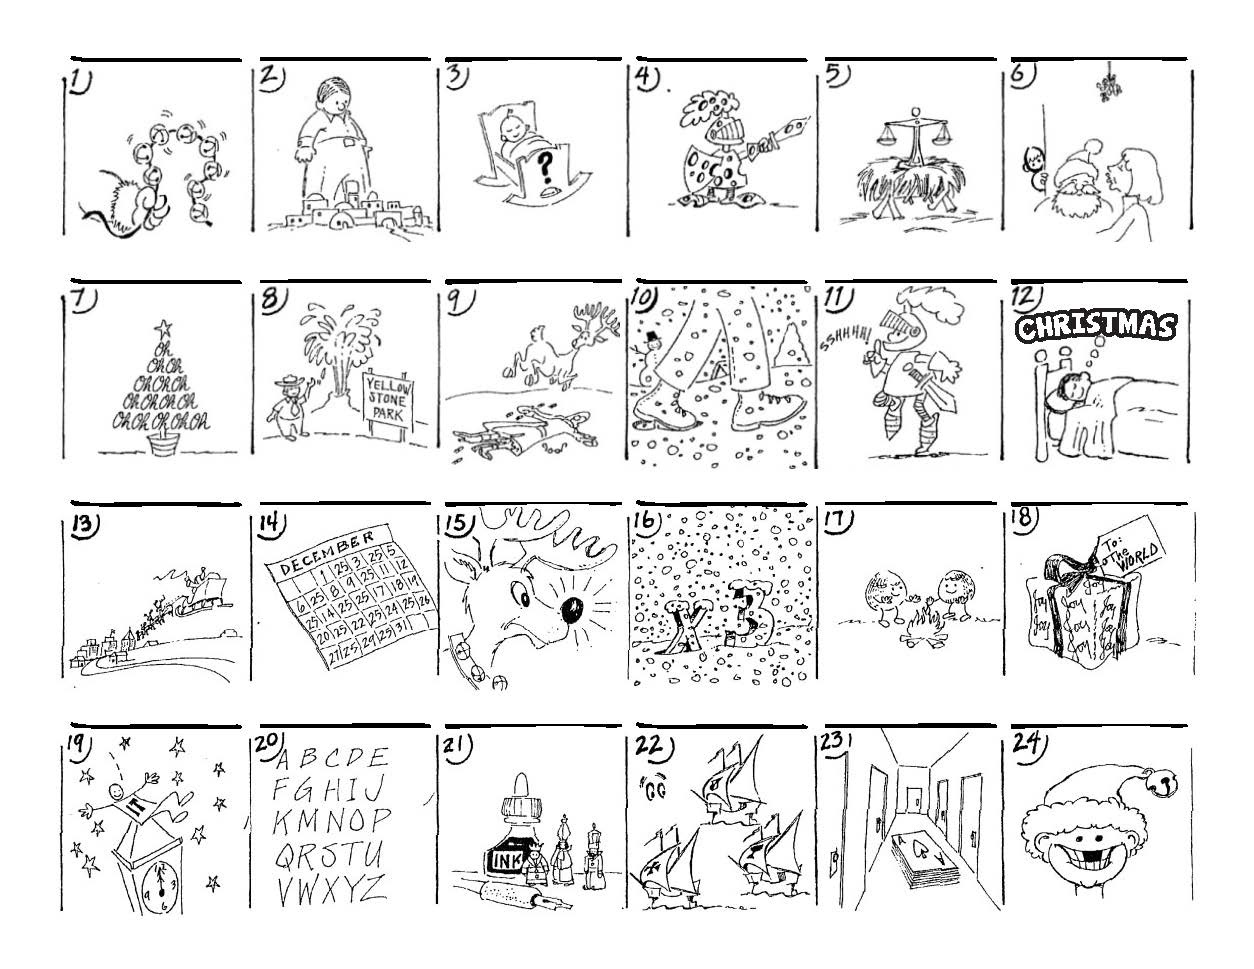 Christmas Carol Puzzles – The Button-Down Mind - Printable Christmas Puzzles And Quizzes